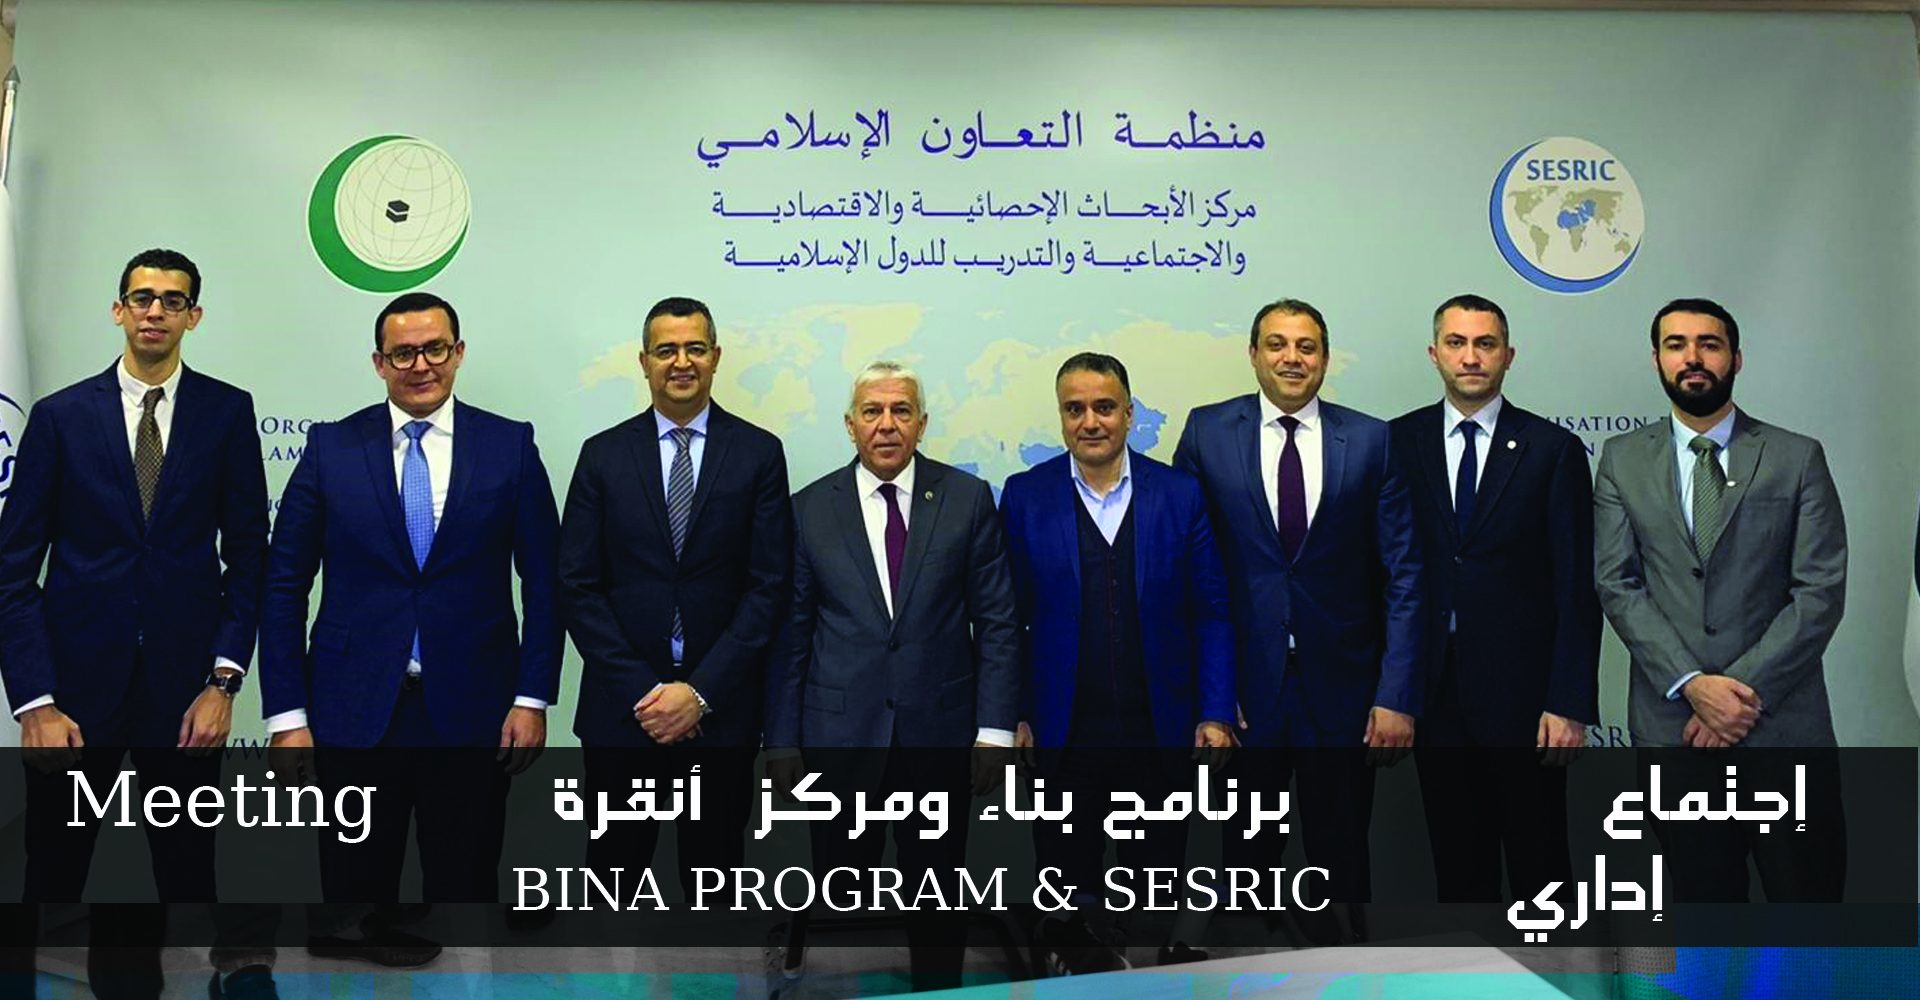 Visit of Dr. Ali ALİSSAWİ Minister of Economy and Industry in Libya to BINA Incubator